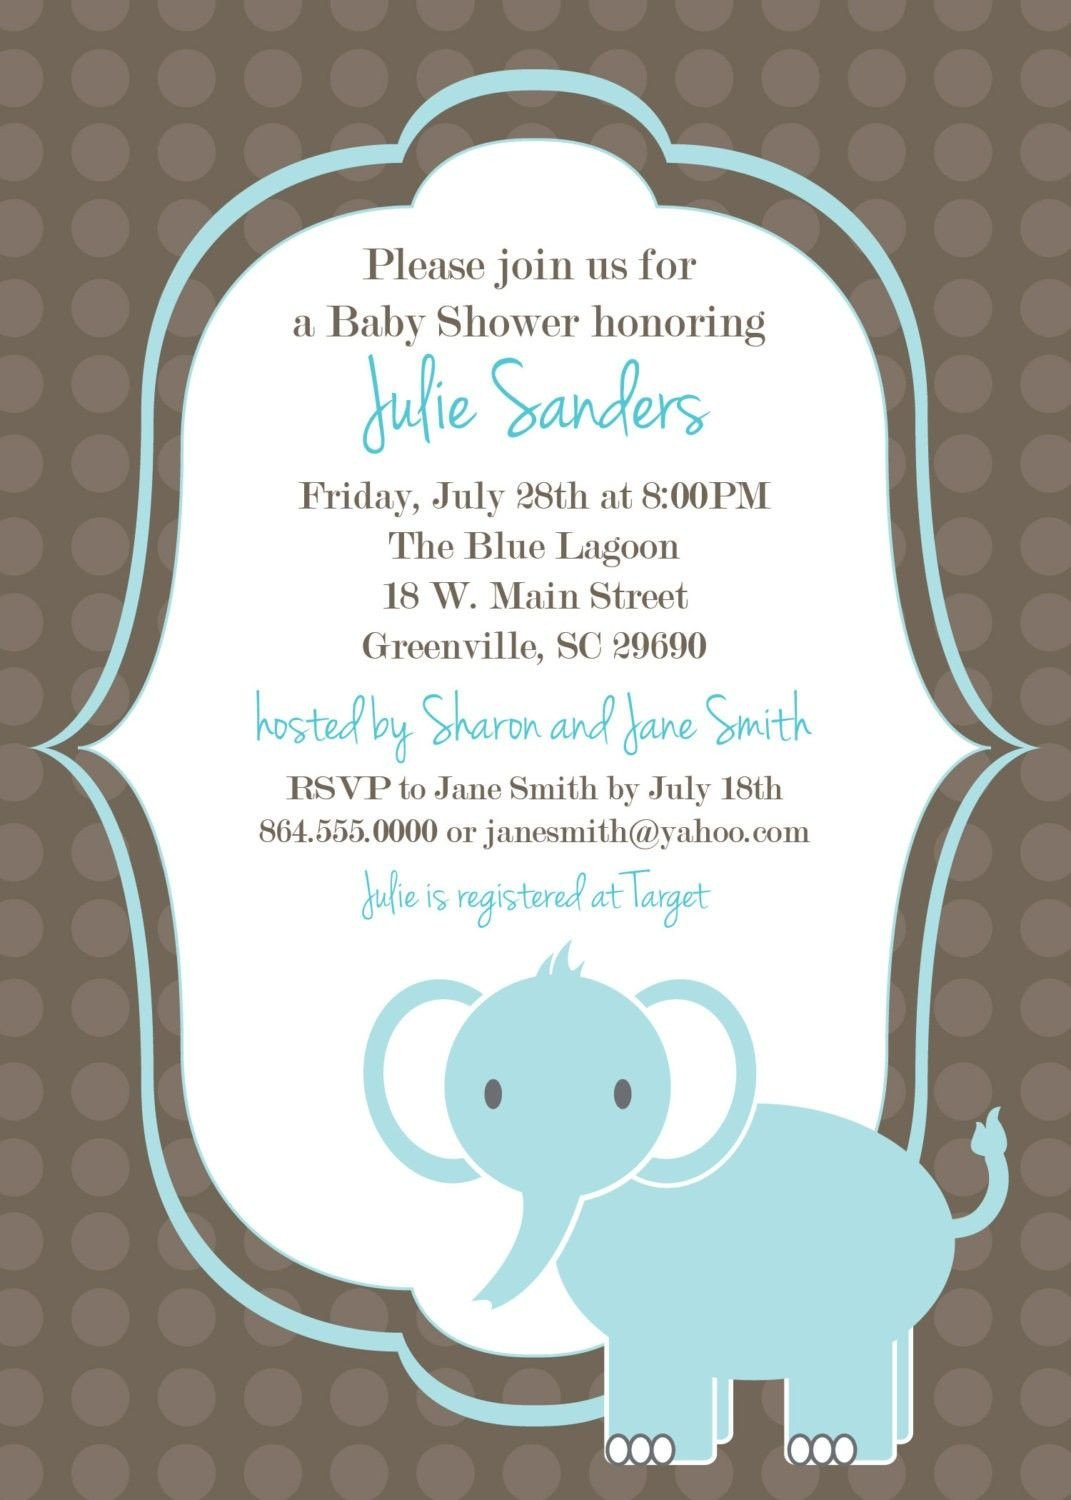 Baby Shower Invite Template Word Download Free Template Got the Free Baby Shower